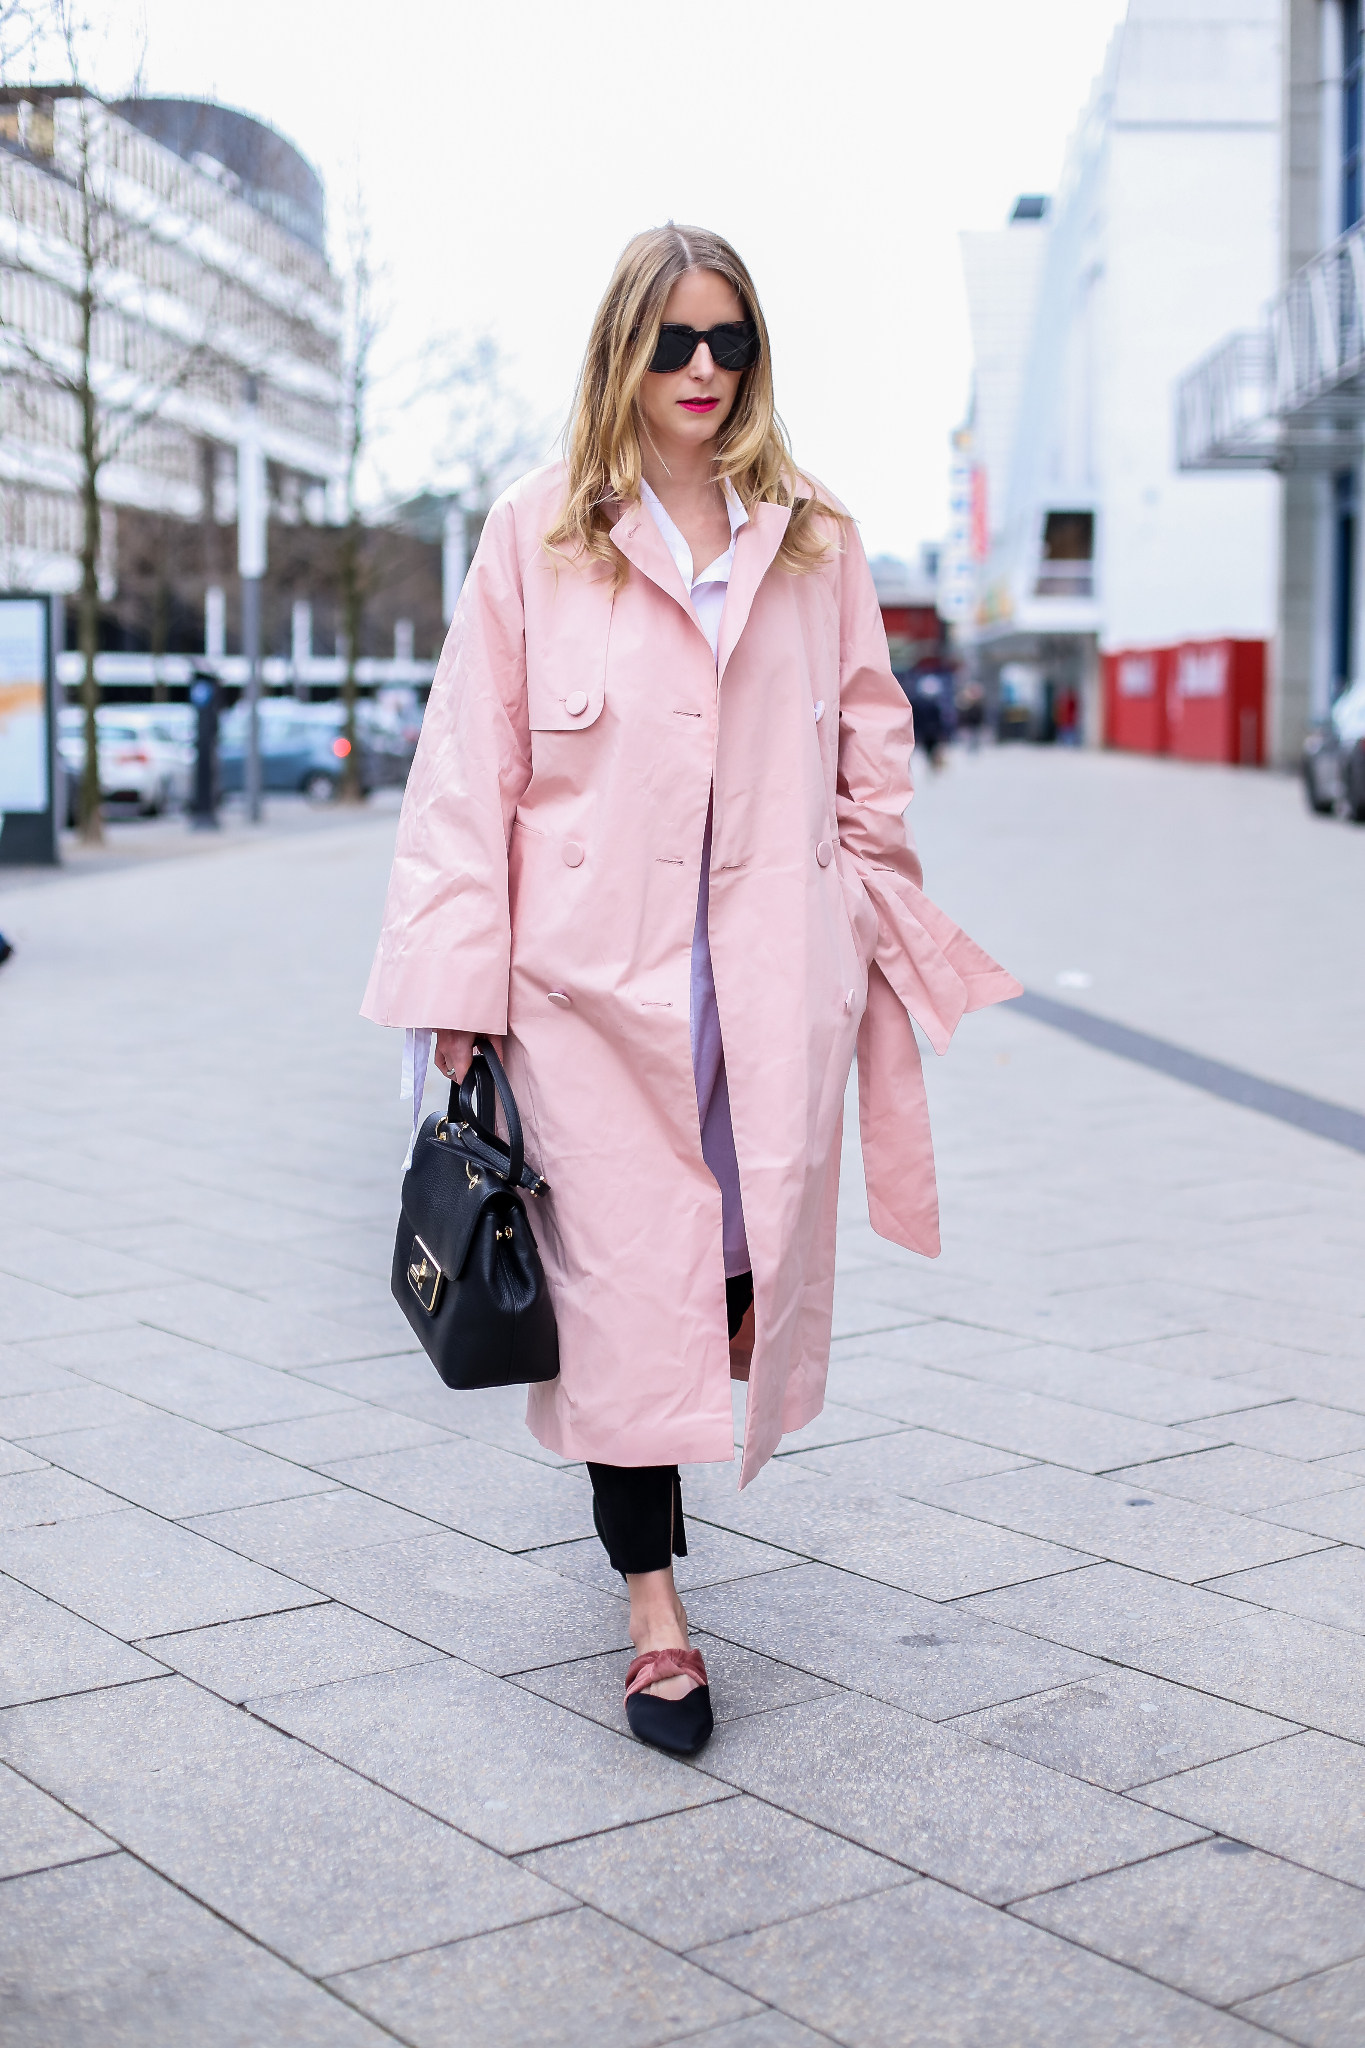 MOD-by-Monique-Fashion-Looks-Pink-and-bows-2